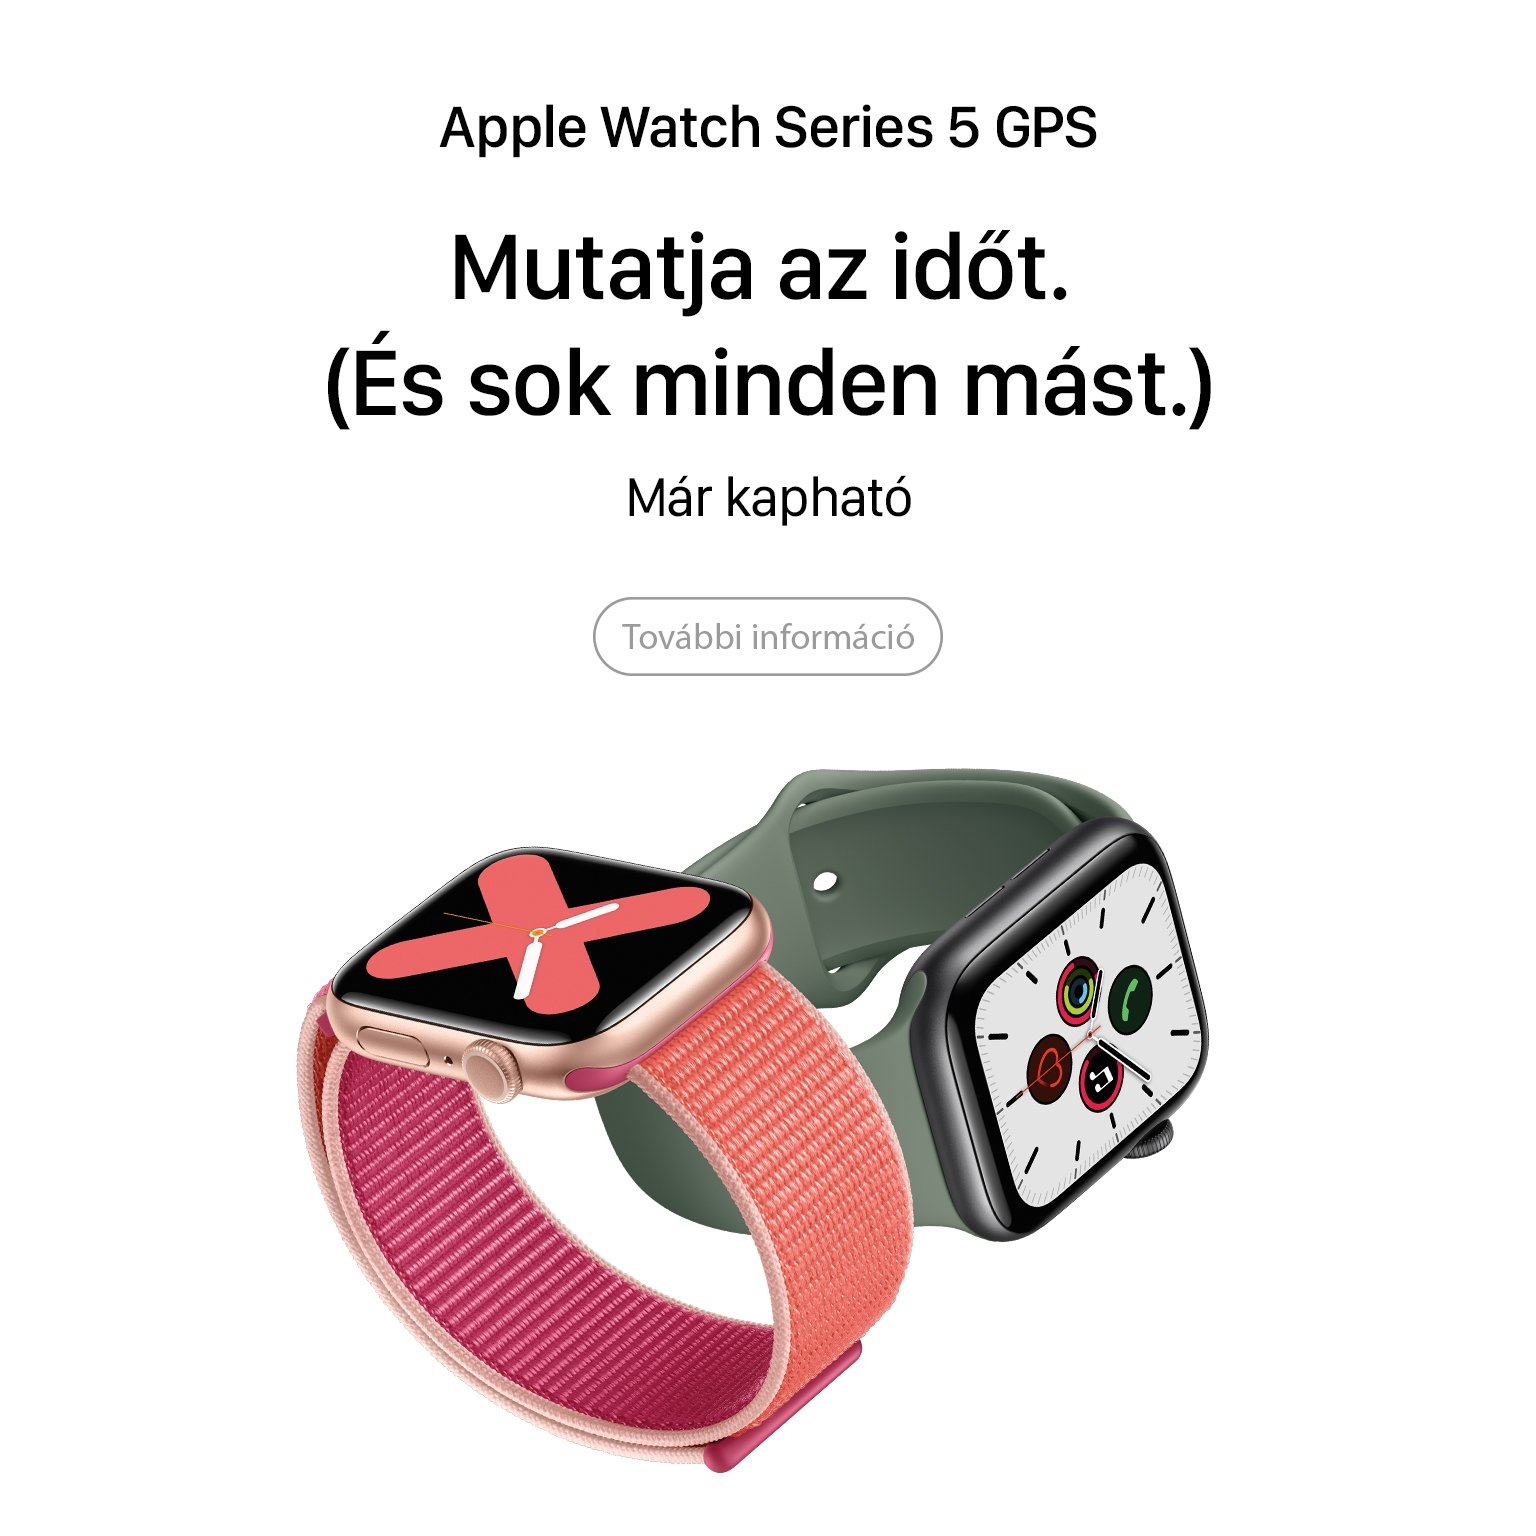 Apple Watch Series 5 GPS available